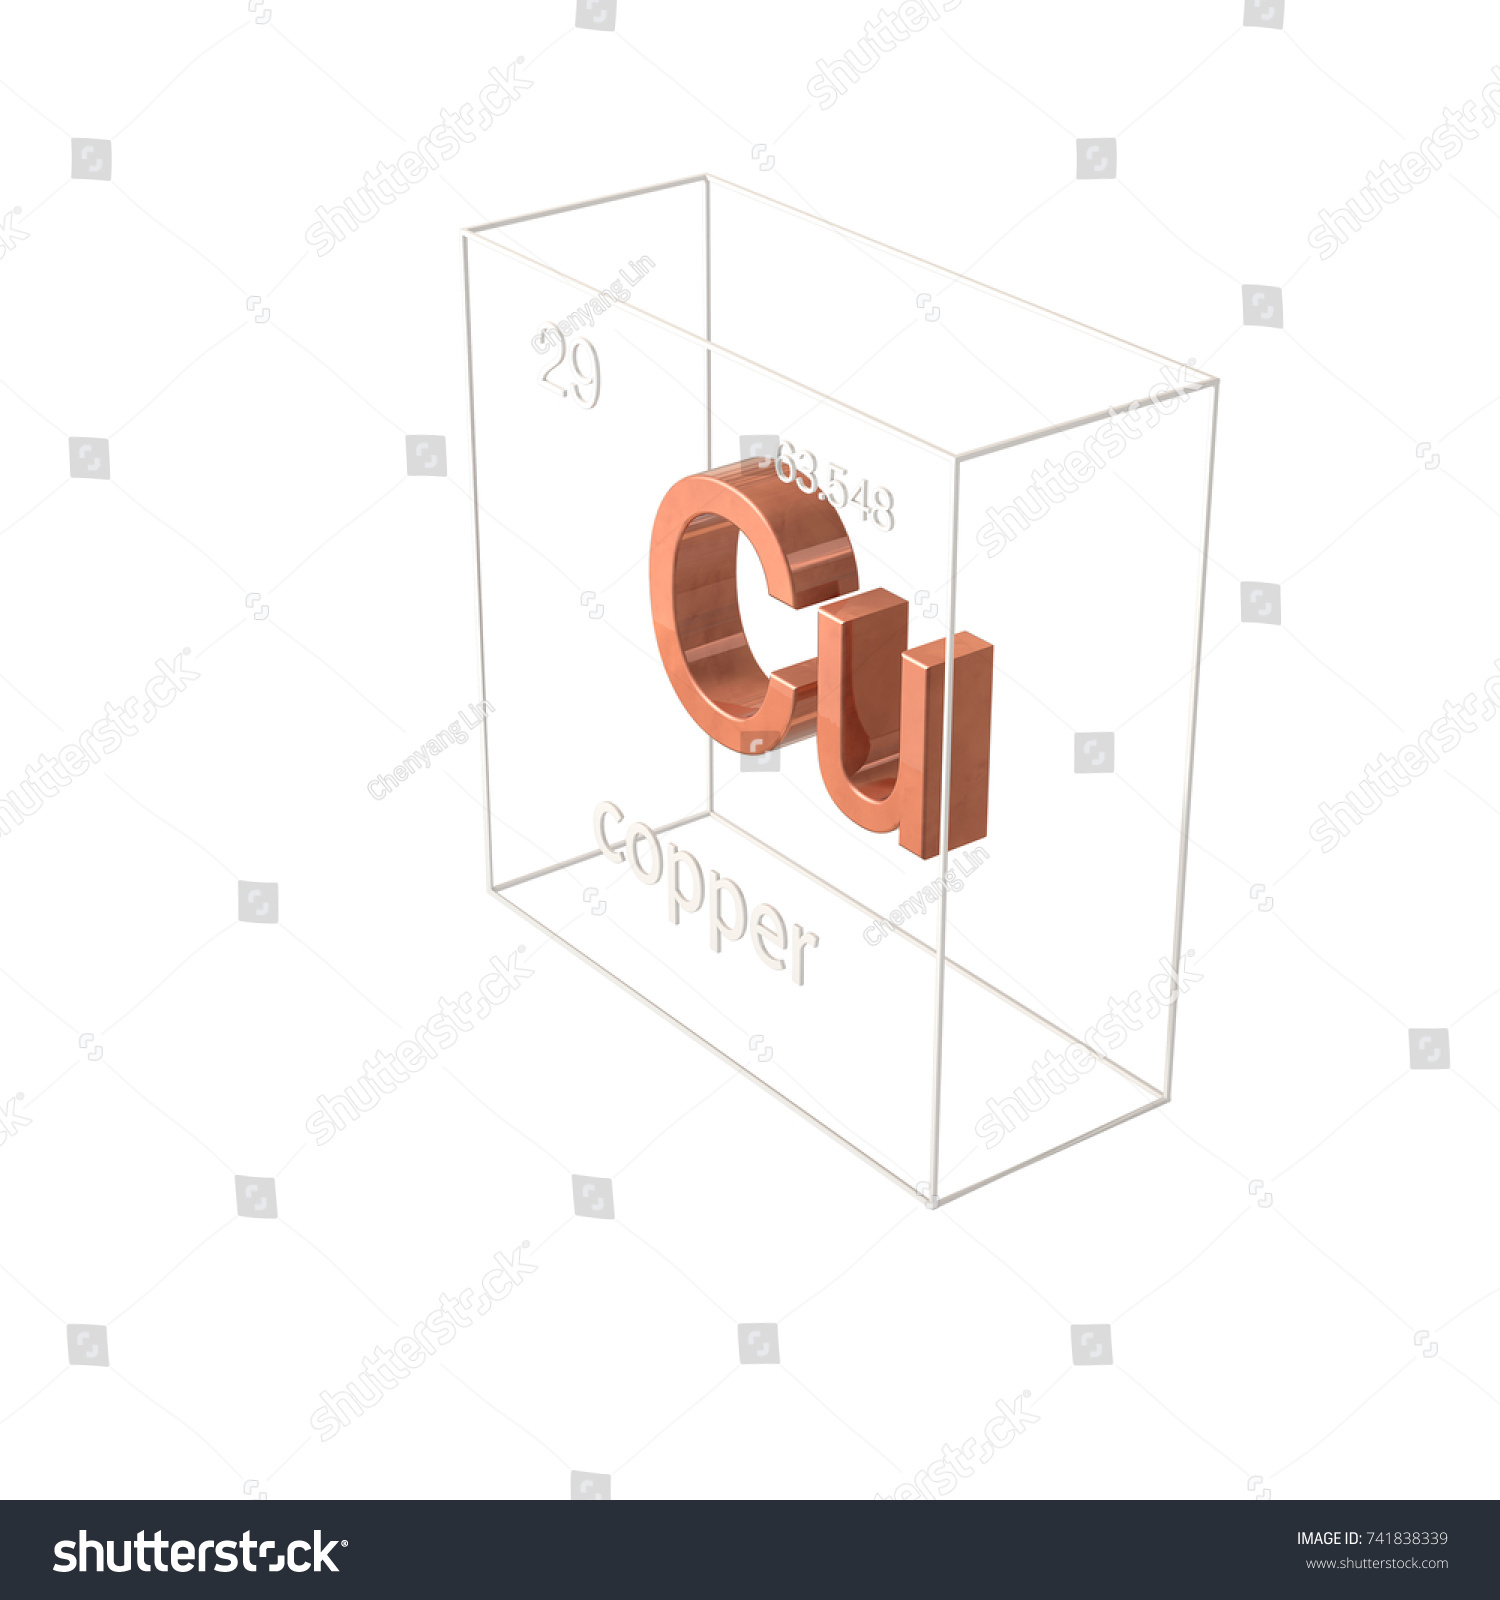 Copper chemical element atomic number atomic stock illustration copper chemical element atomic number and atomic weight chemical element of periodic table urtaz Image collections